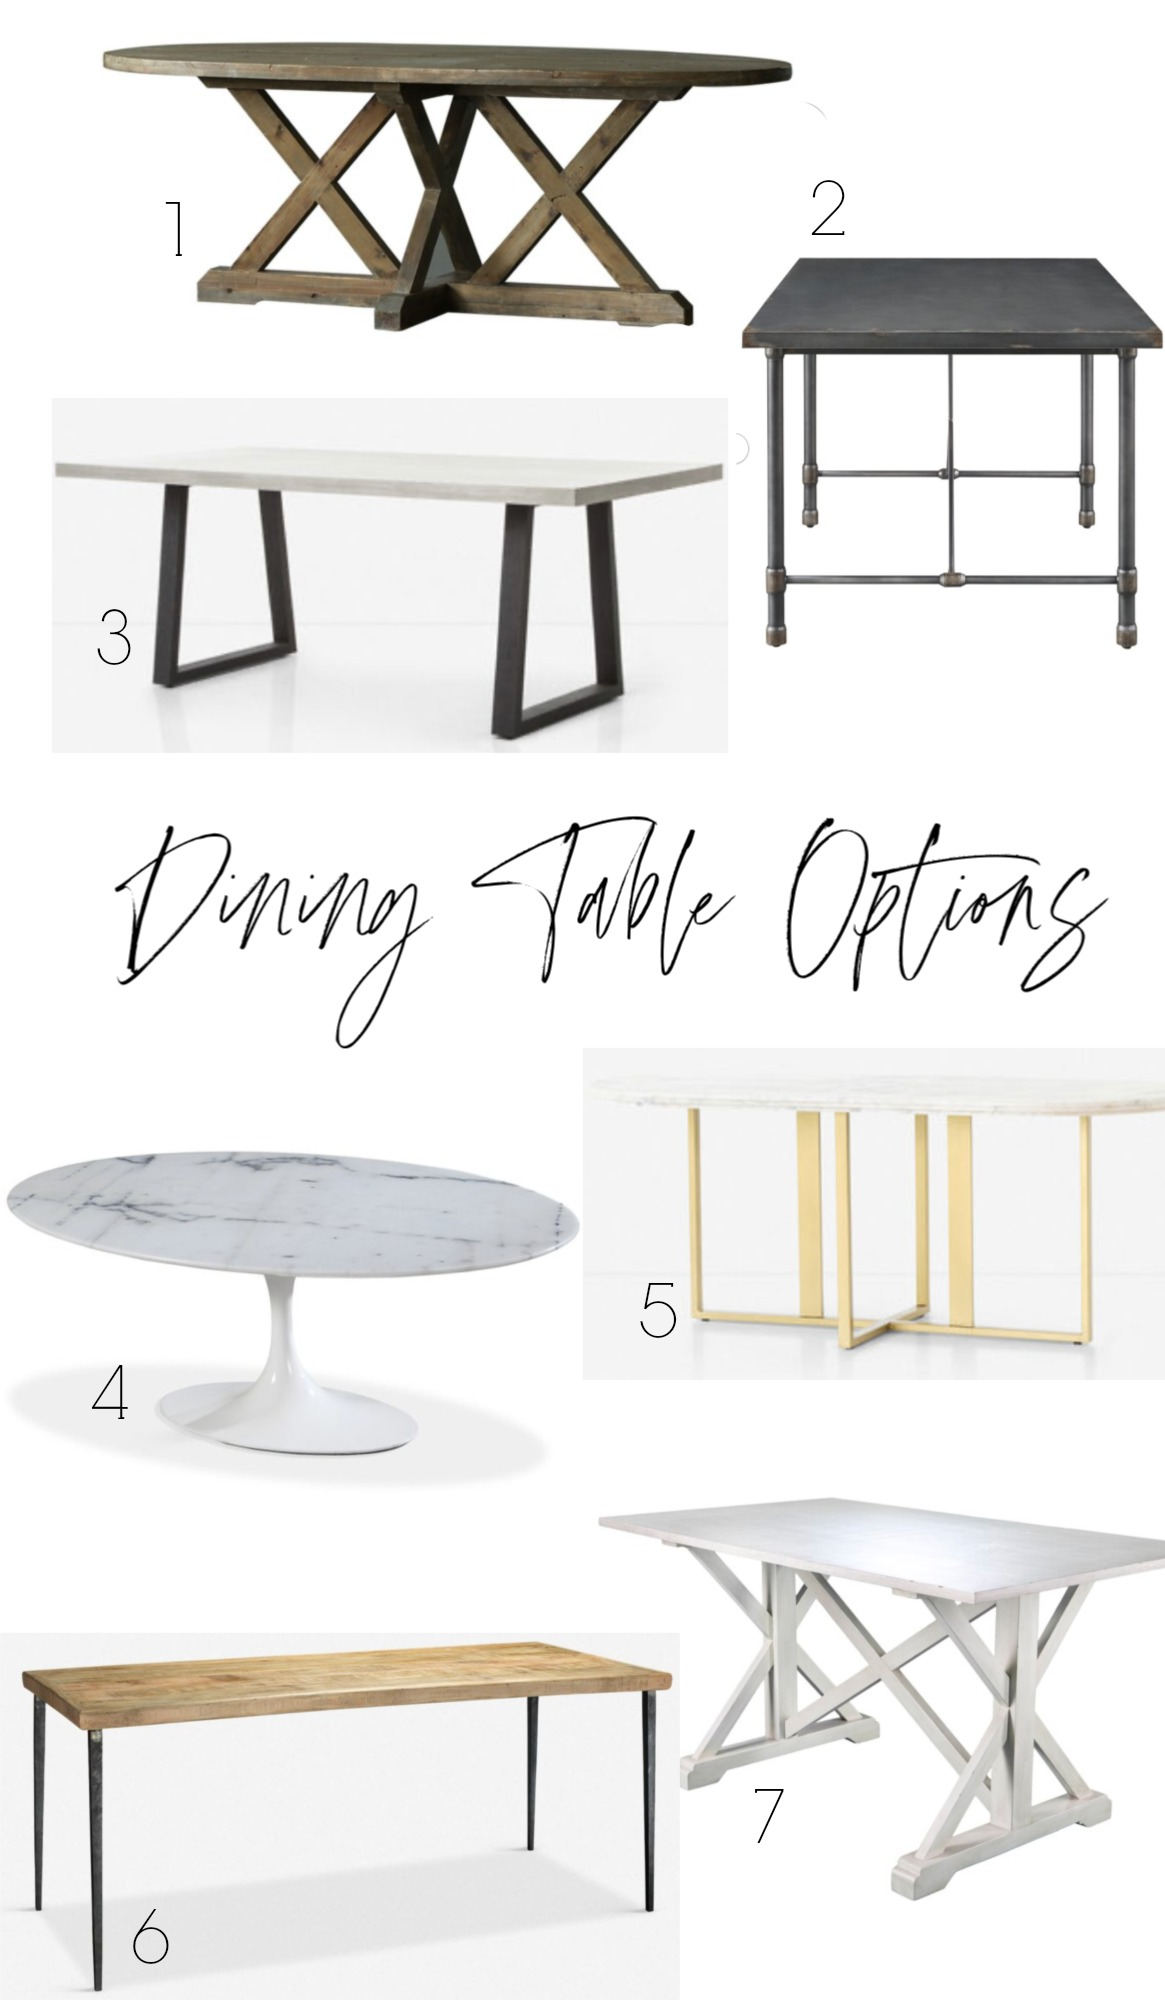 Dining Table Options